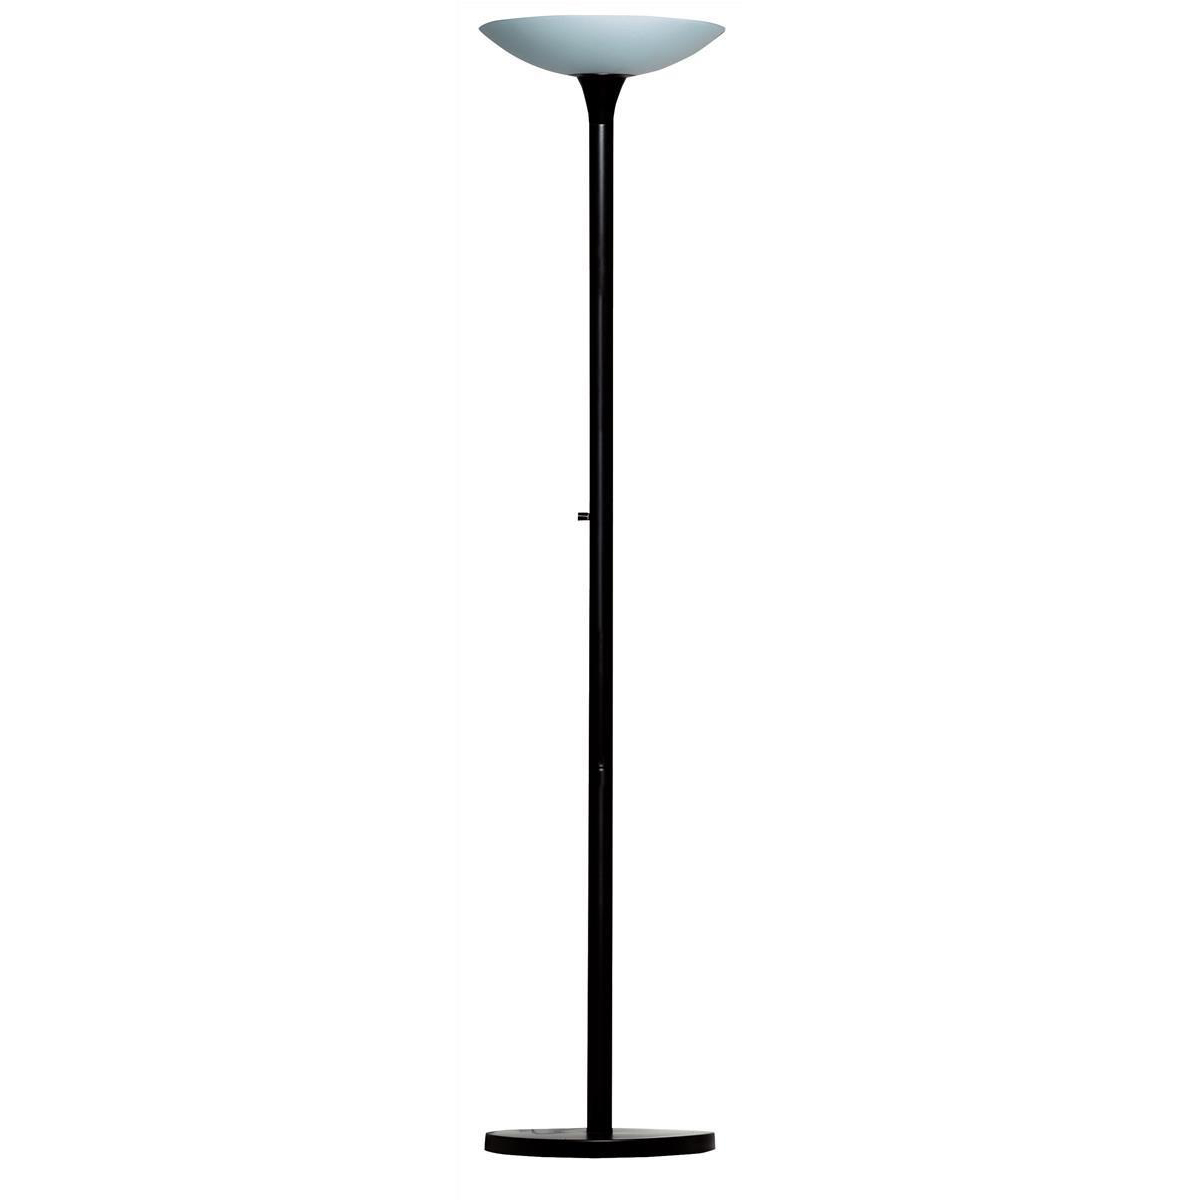 Unilux Variaglass Frosted Glass Uplighter 22W Height of 1800mm Base of 340mm Black/Glass Ref 400101463